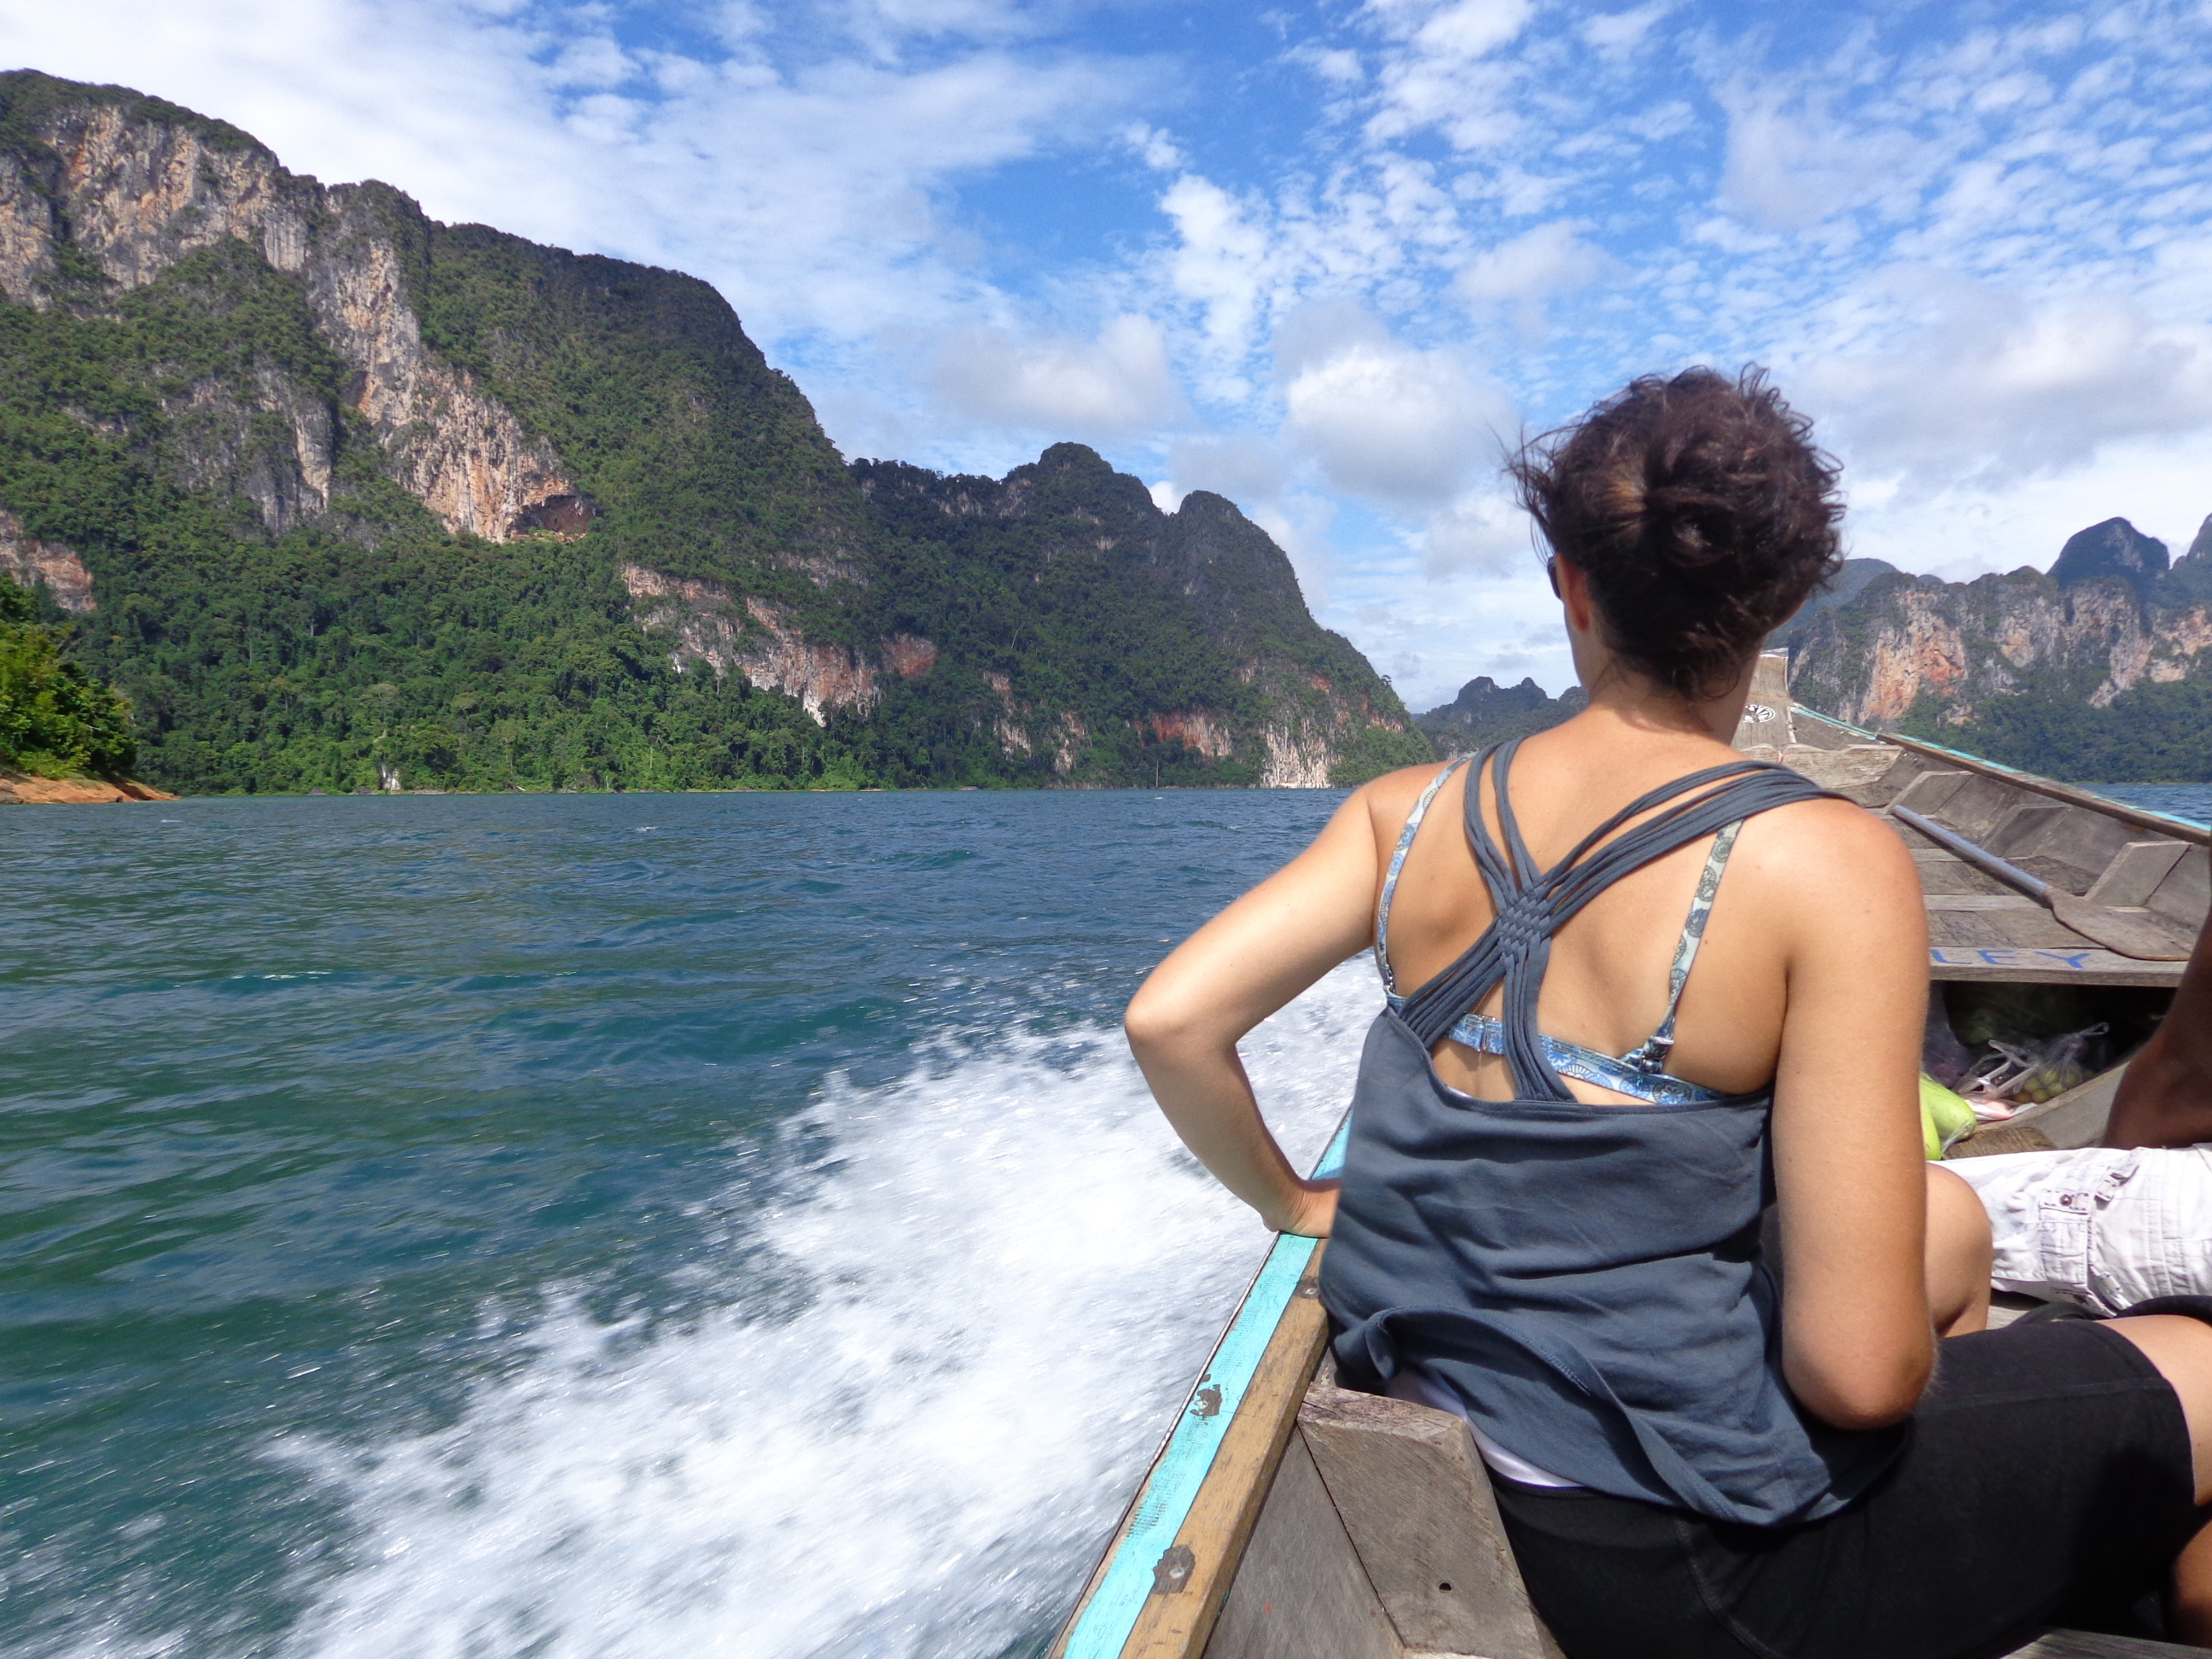 Boating on the lake in Khao Sok National Park